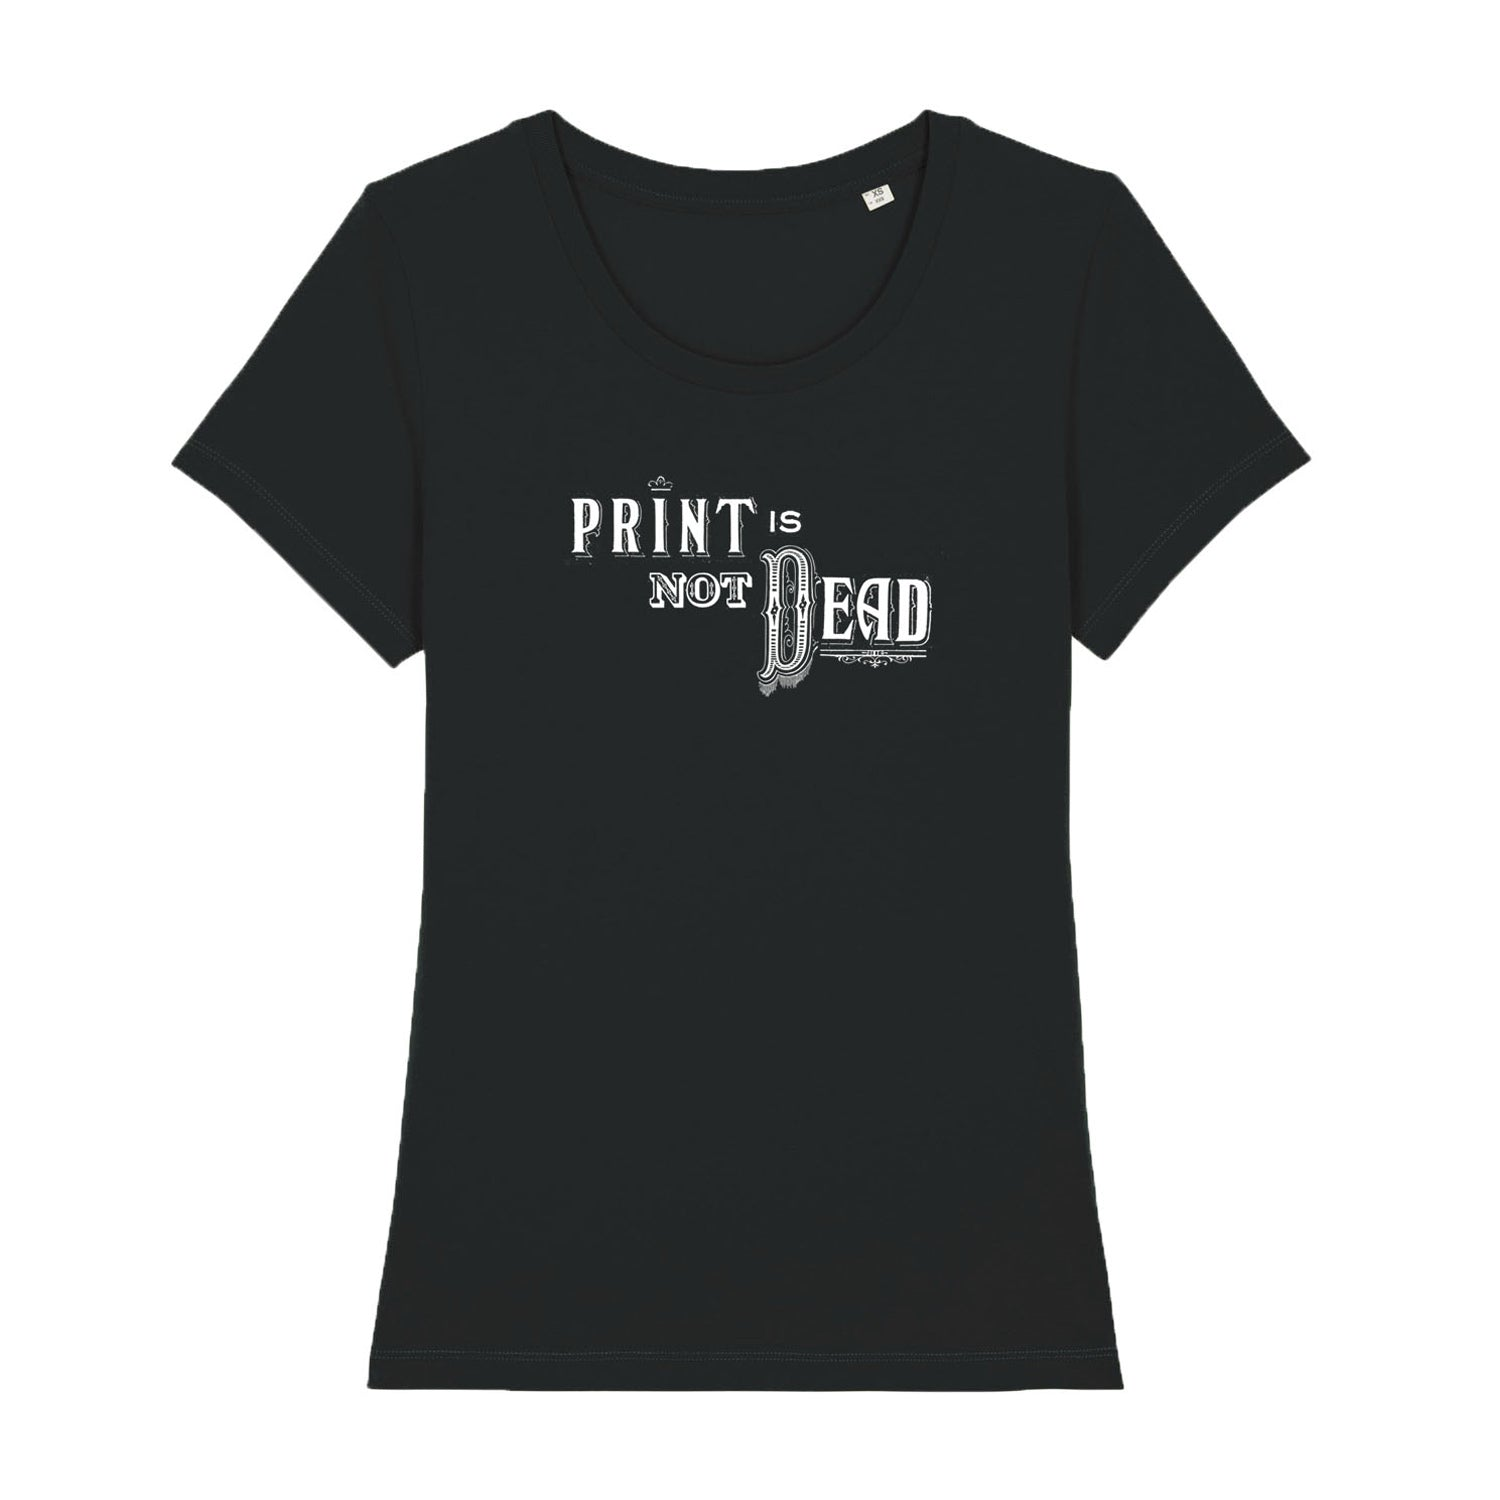 cool womens t shirt in black with vintage illustration of typewriter and the words 'analogue girl' typed next to it